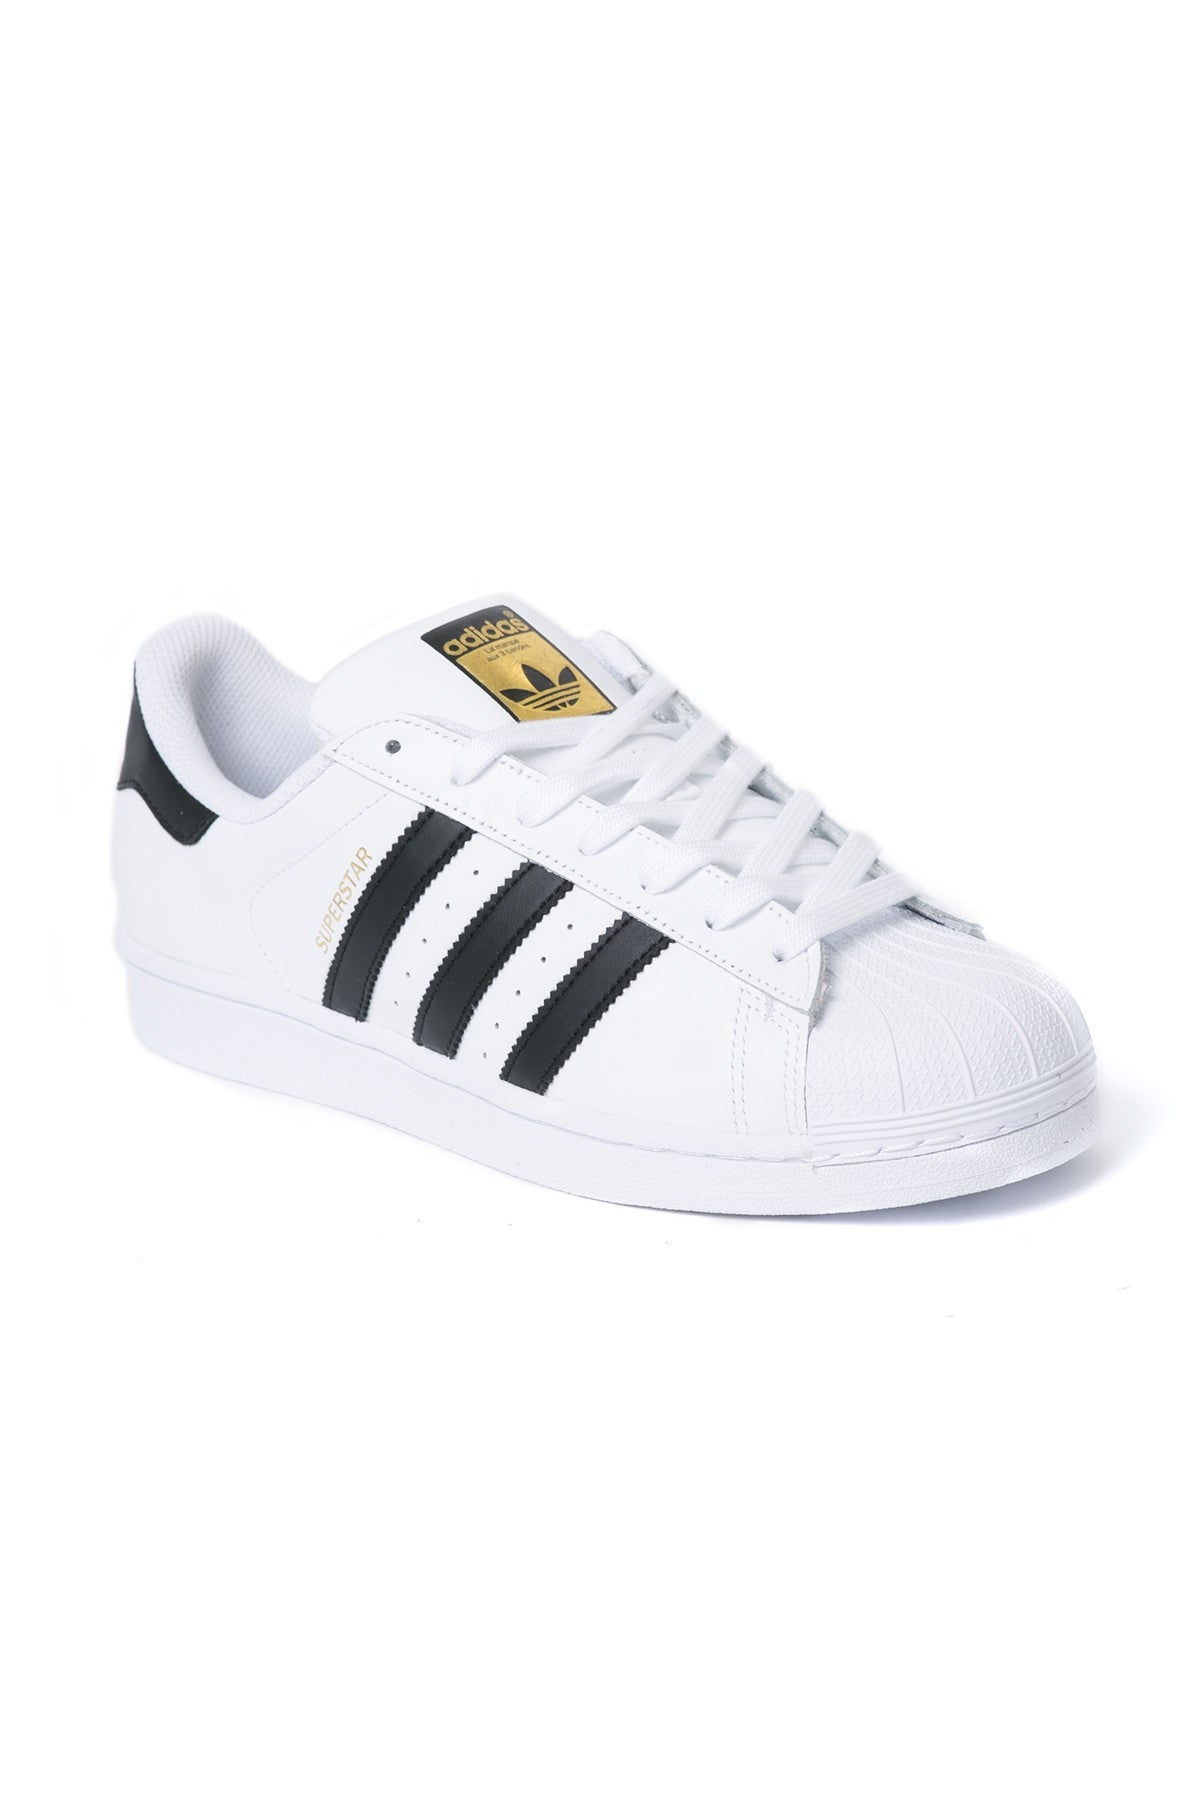 on sale e28b3 fd7bd Adidas Originals Superstar White Black C77124 The adidas Superstar sneaker  reigns supreme. The fan favourite ...